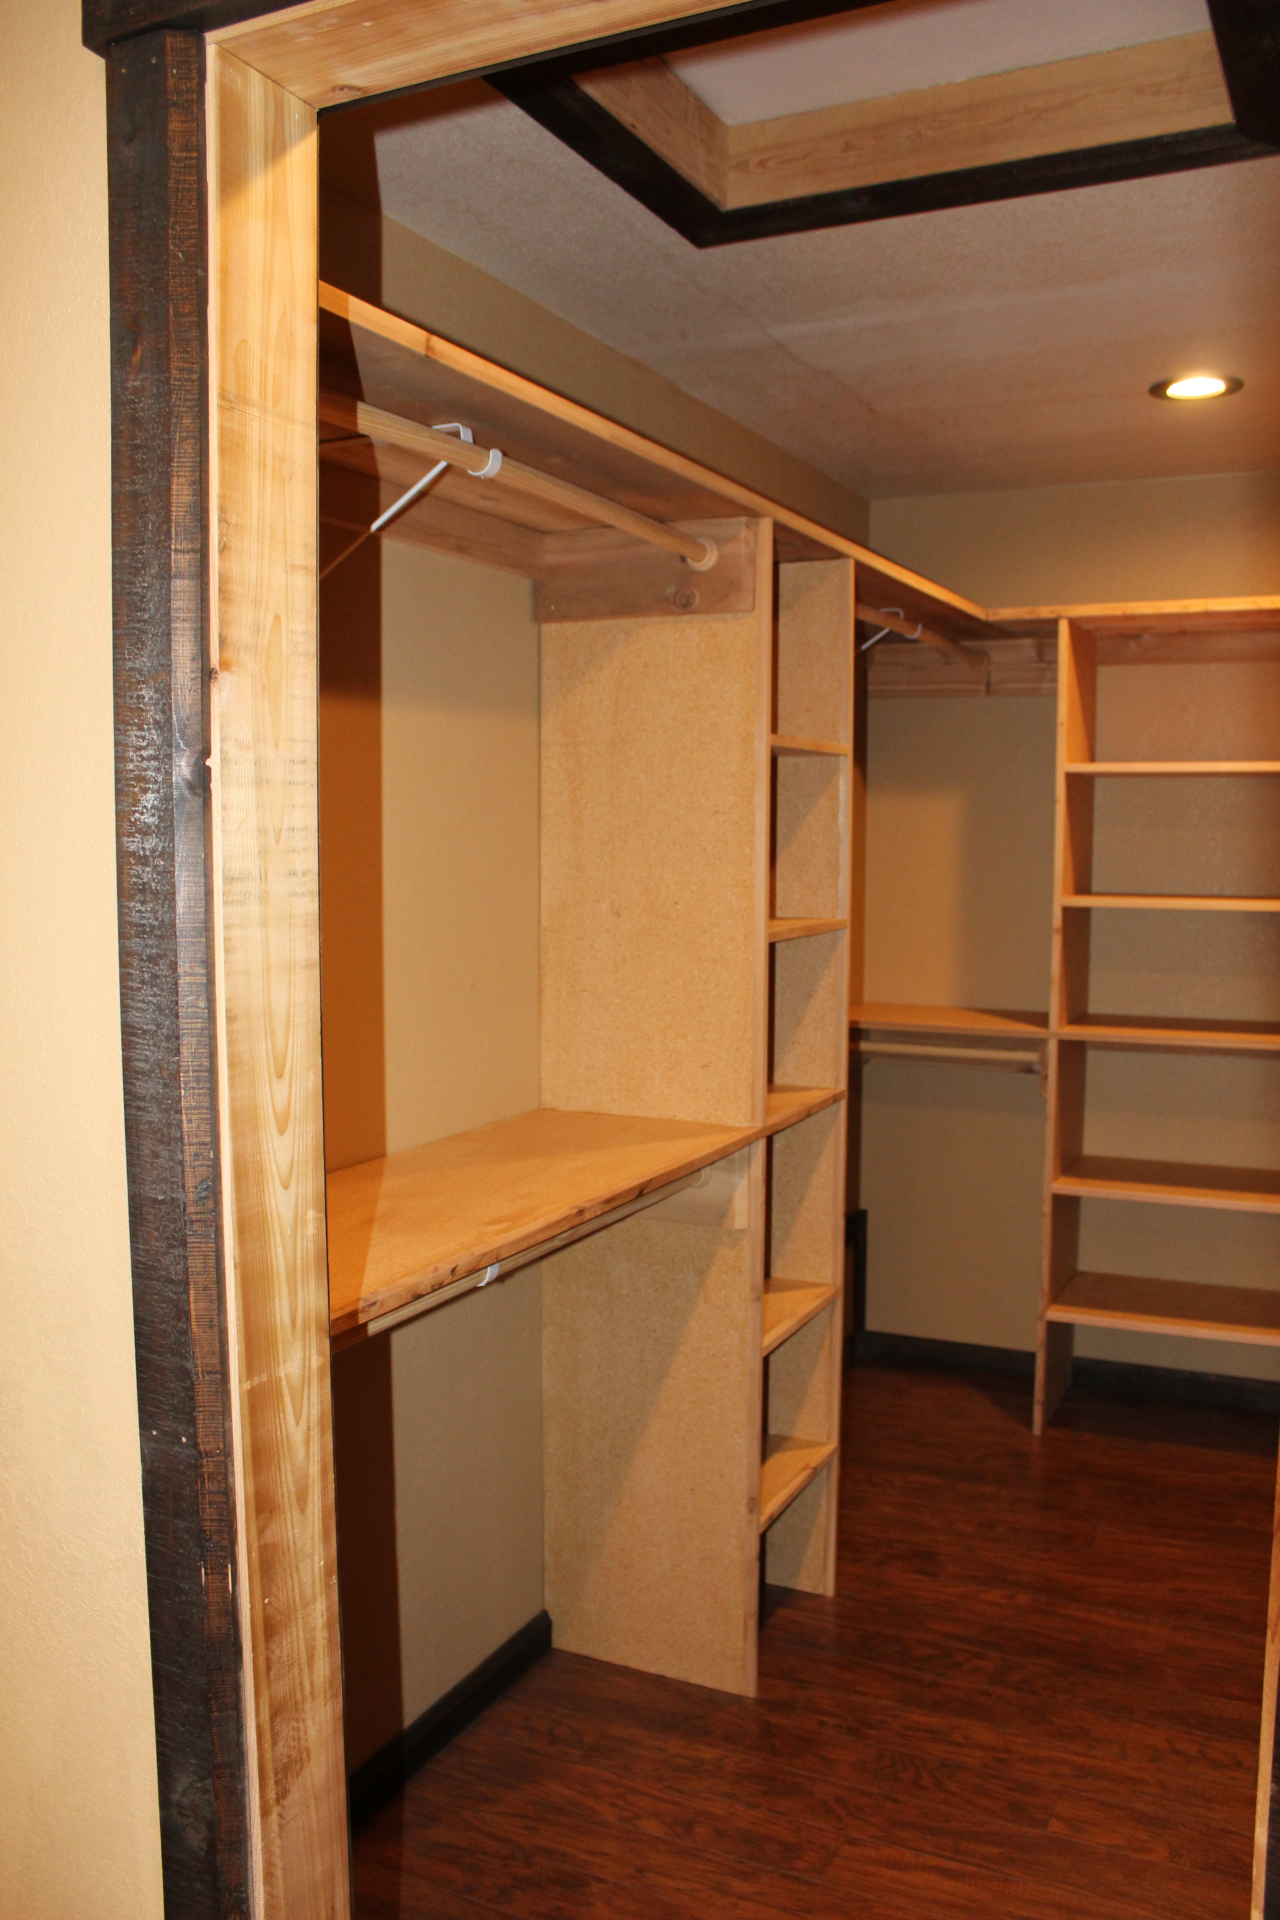 Walk-In Closet with Built-In Storage Solutions